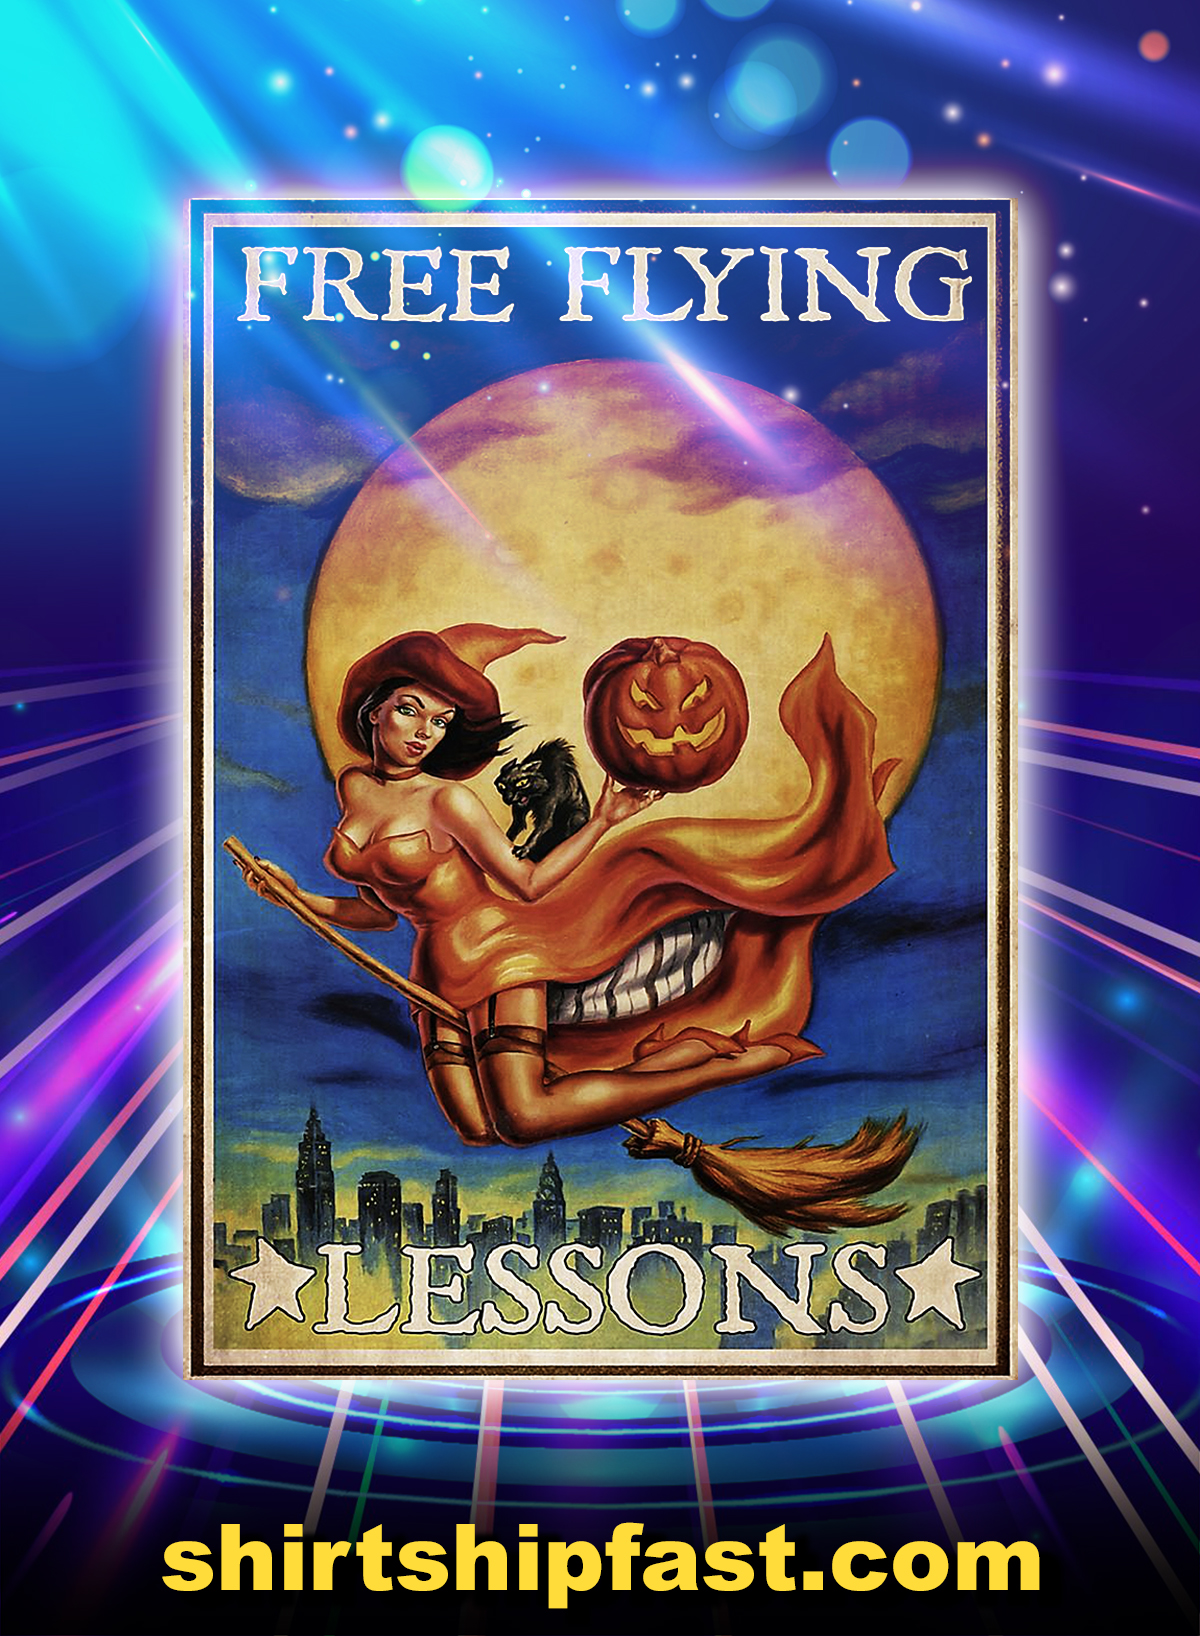 Free flying lessons poster - A4